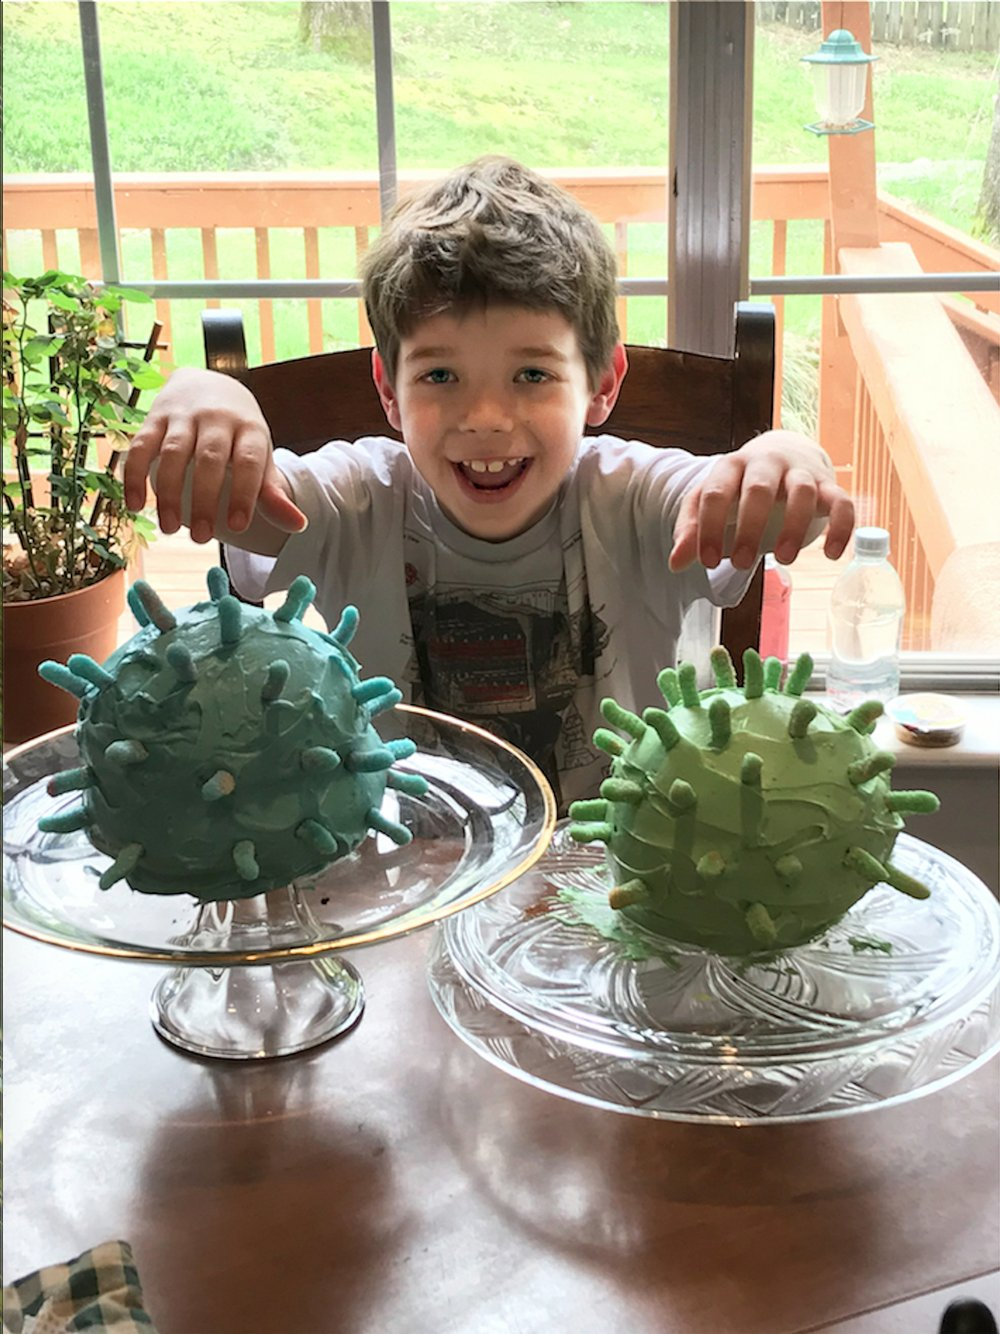 Collin Scuderi shows off coronavirus-inspired cakes made for his ninth birthday party, whose theme was the pandemic and which was conducted at home April 3. (Special to the Democrat-Gazette/Noelle Scuderi)